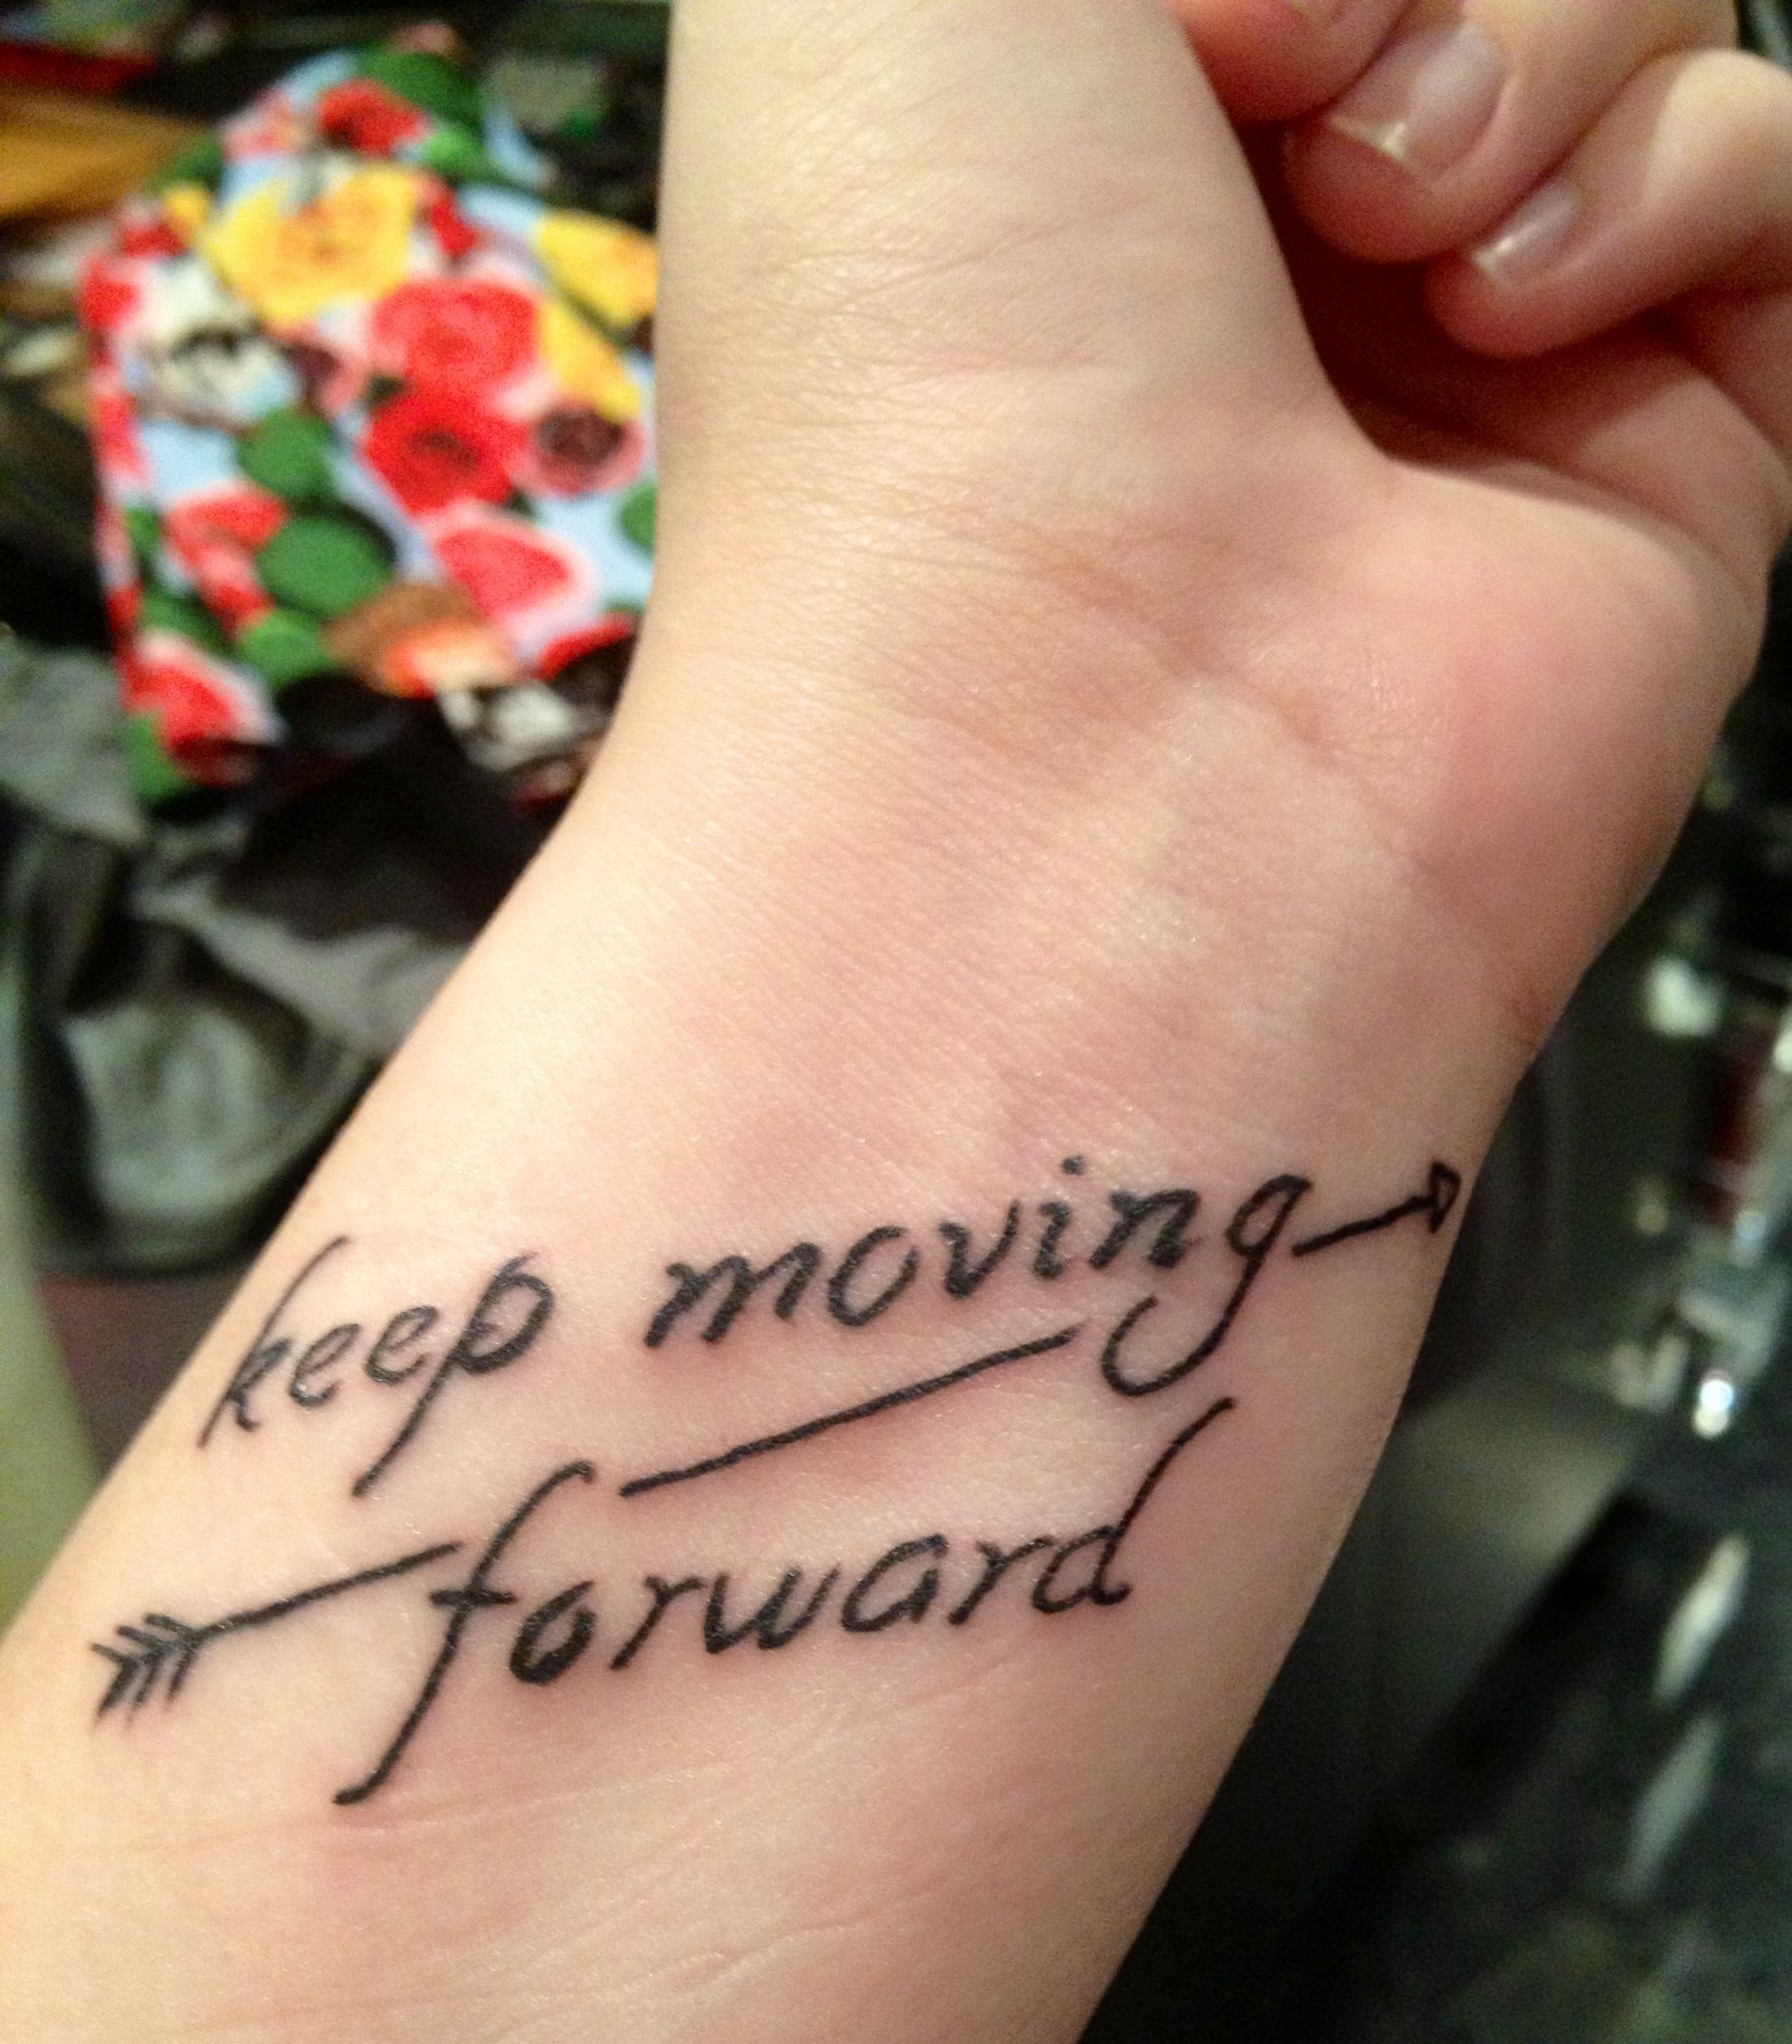 Pin By Chelsea Watson On All Things Me Tattoos With Meaning Foot Tattoos Simple Tattoos